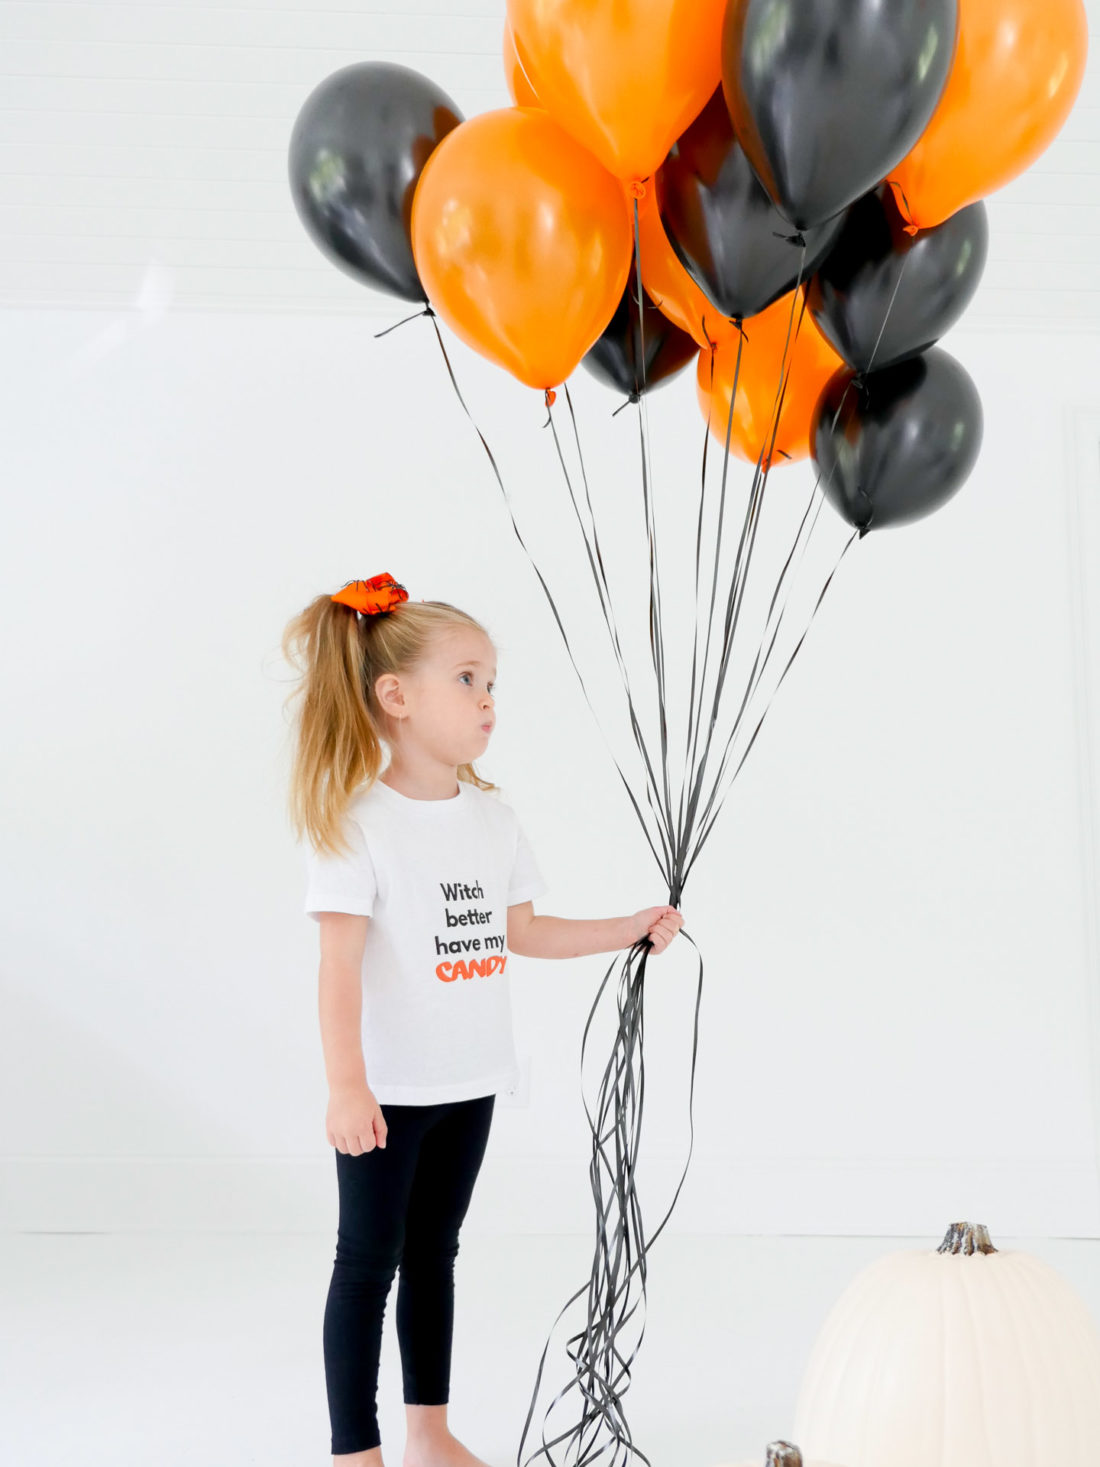 Marlowe Martino wears a festive Halloween tee shirt designed using The Happily App and holds a big bundle of orange and black balloons